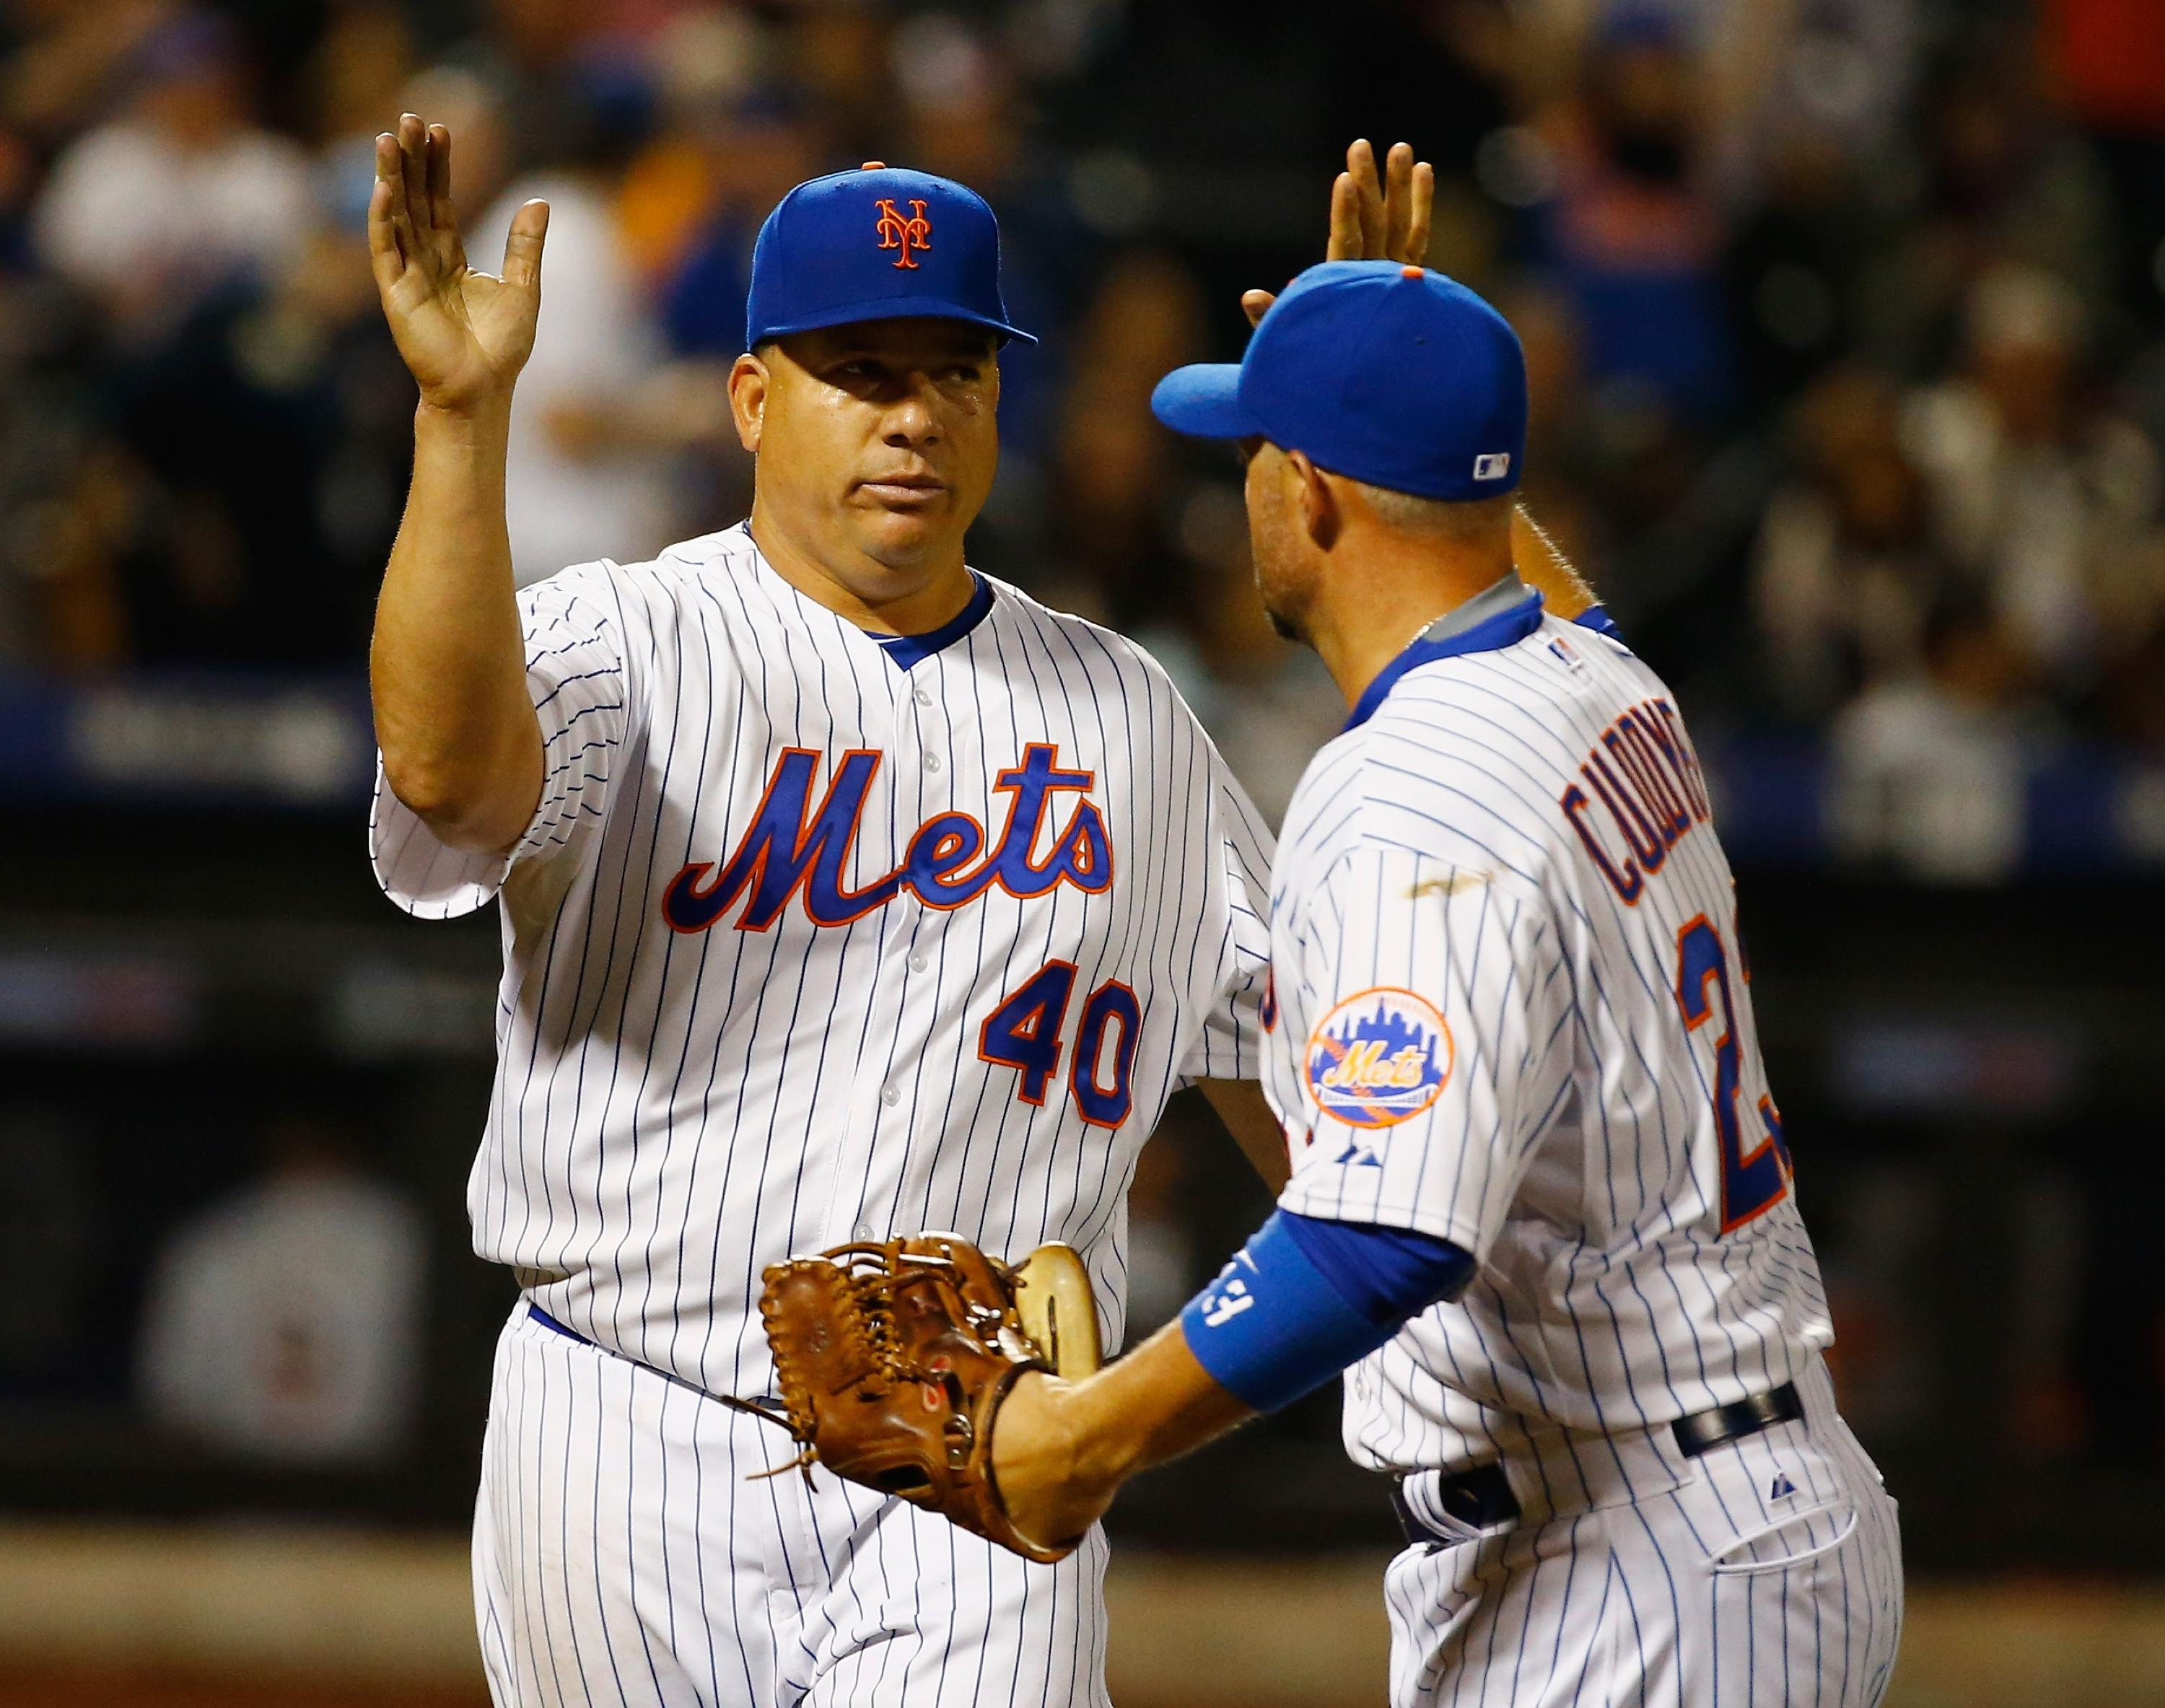 Mets winning streak reaches six as Bartolo Colon improves to 3-0